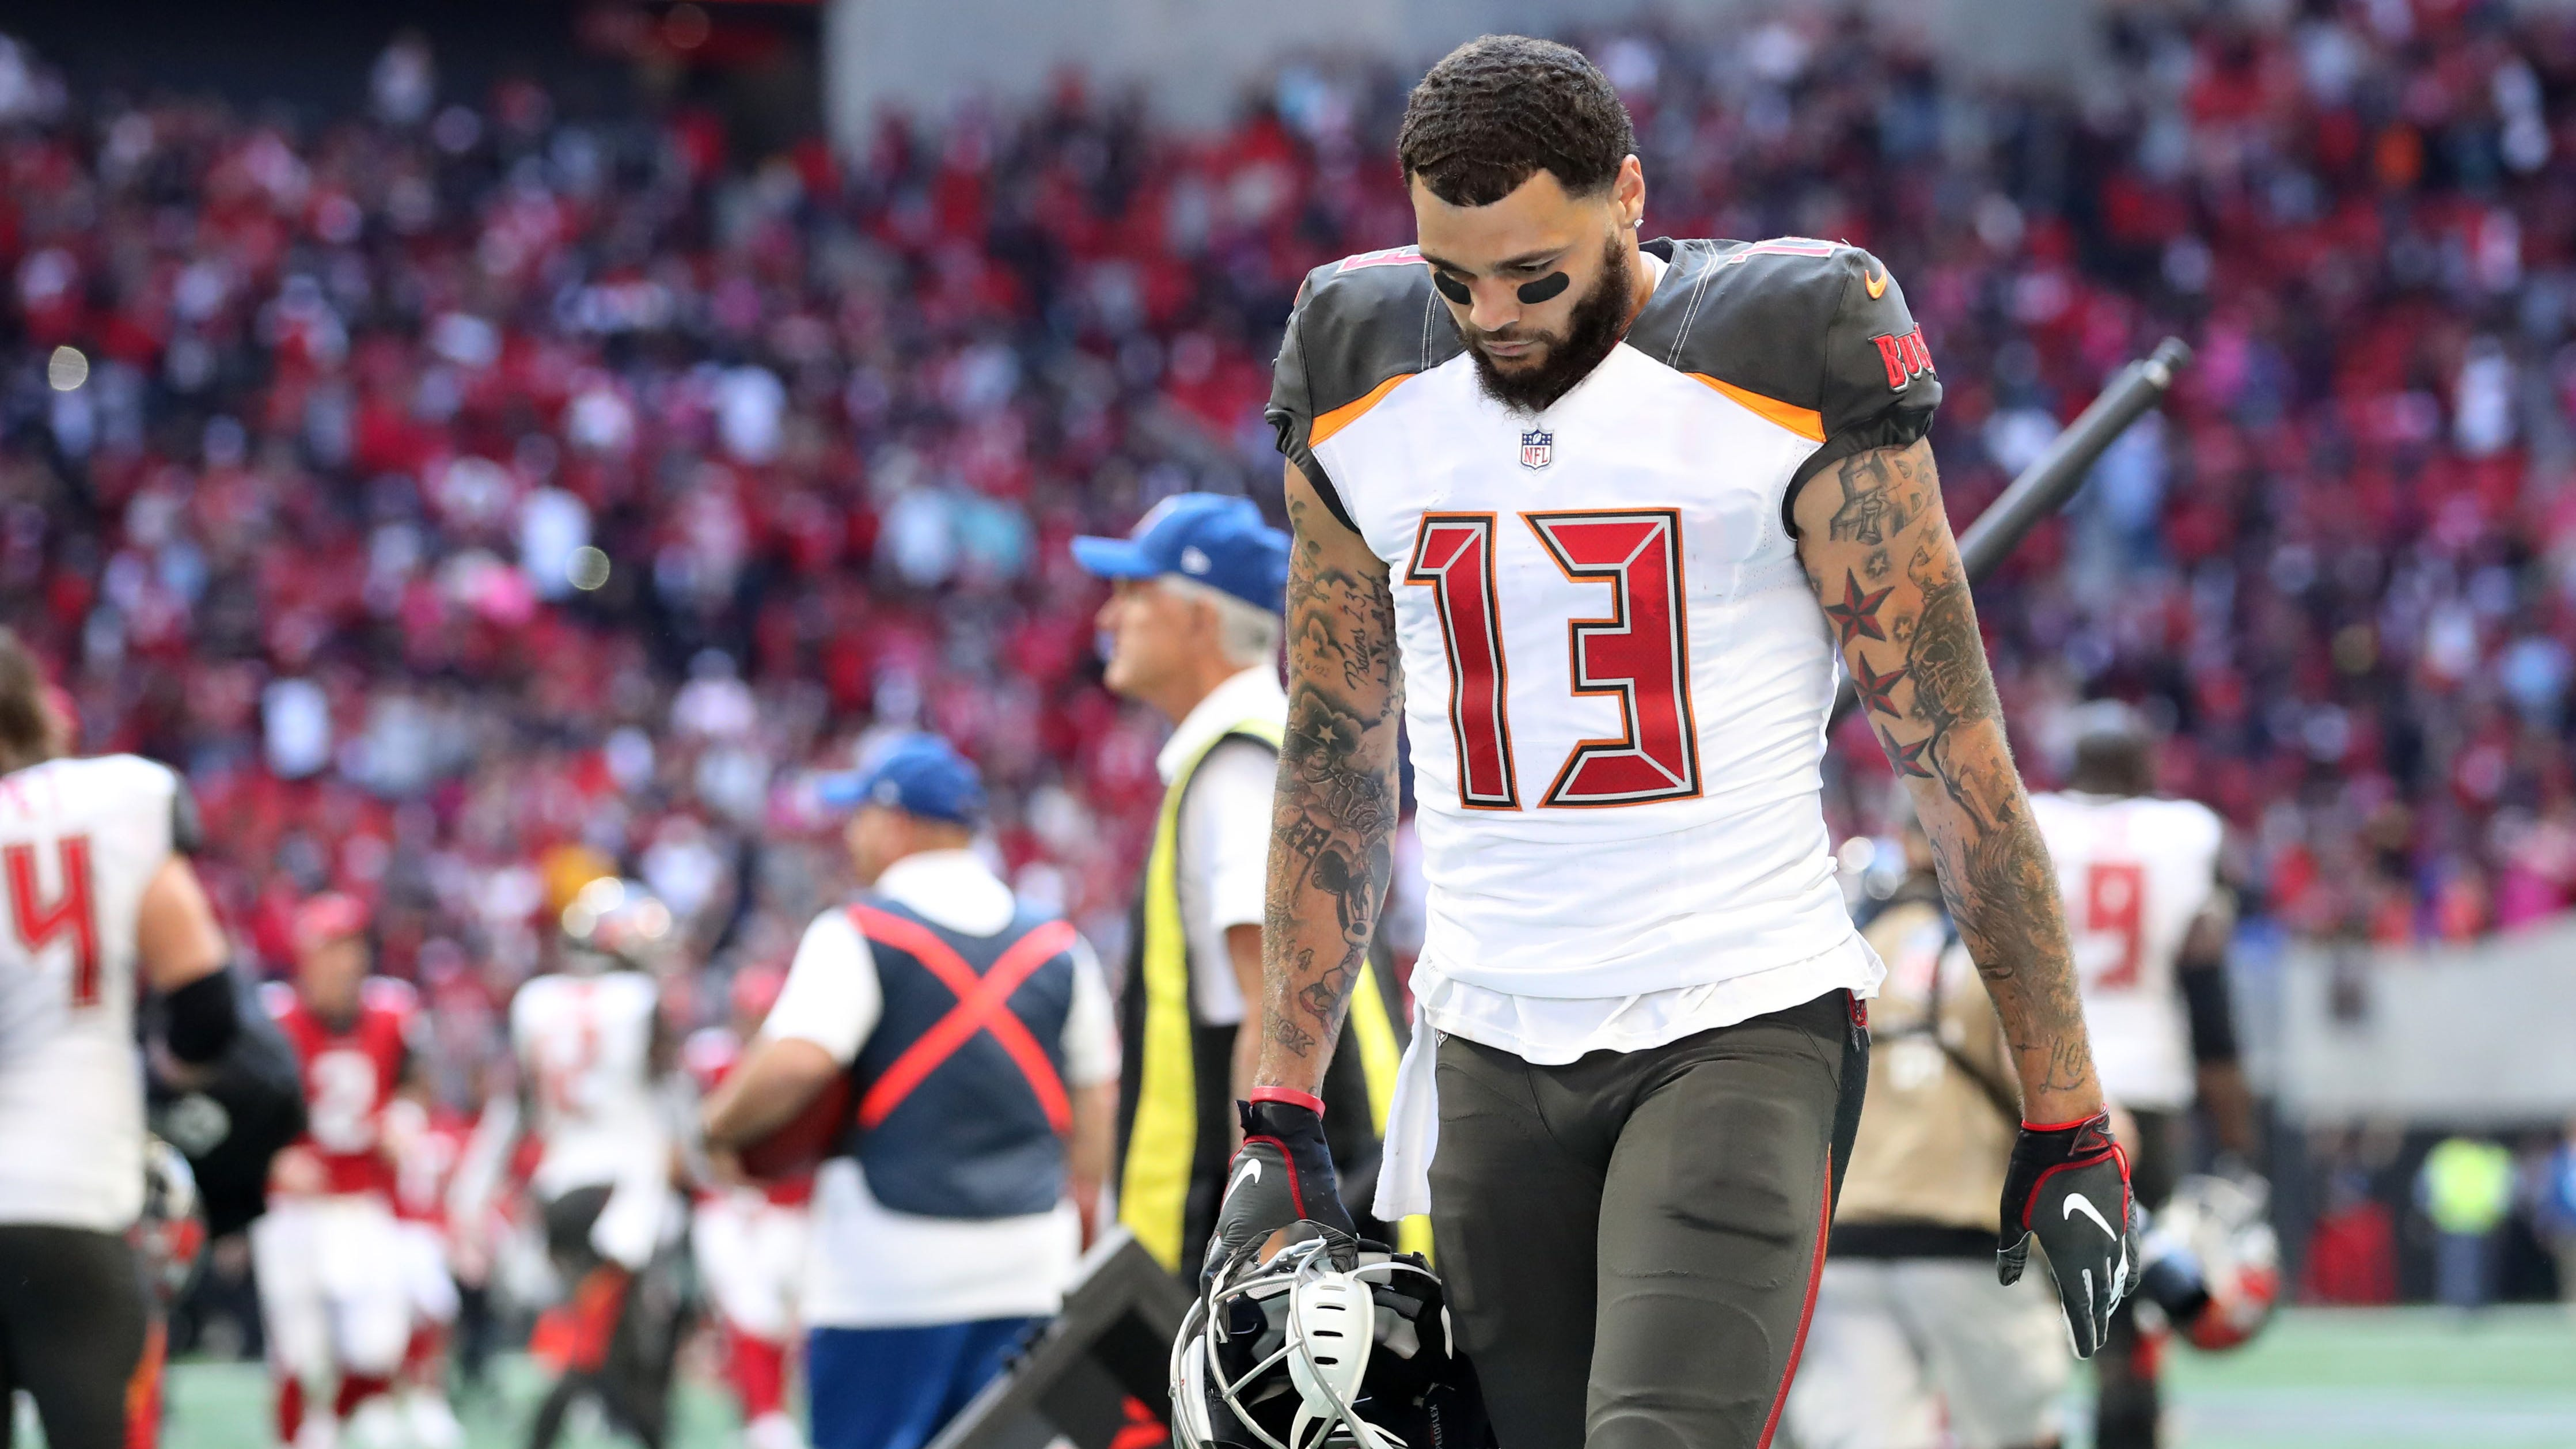 Tampa Bay Buccaneers wide receiver Mike Evans (13) reacts after their loss to the Atlanta Falcons at Mercedes-Benz Stadium.